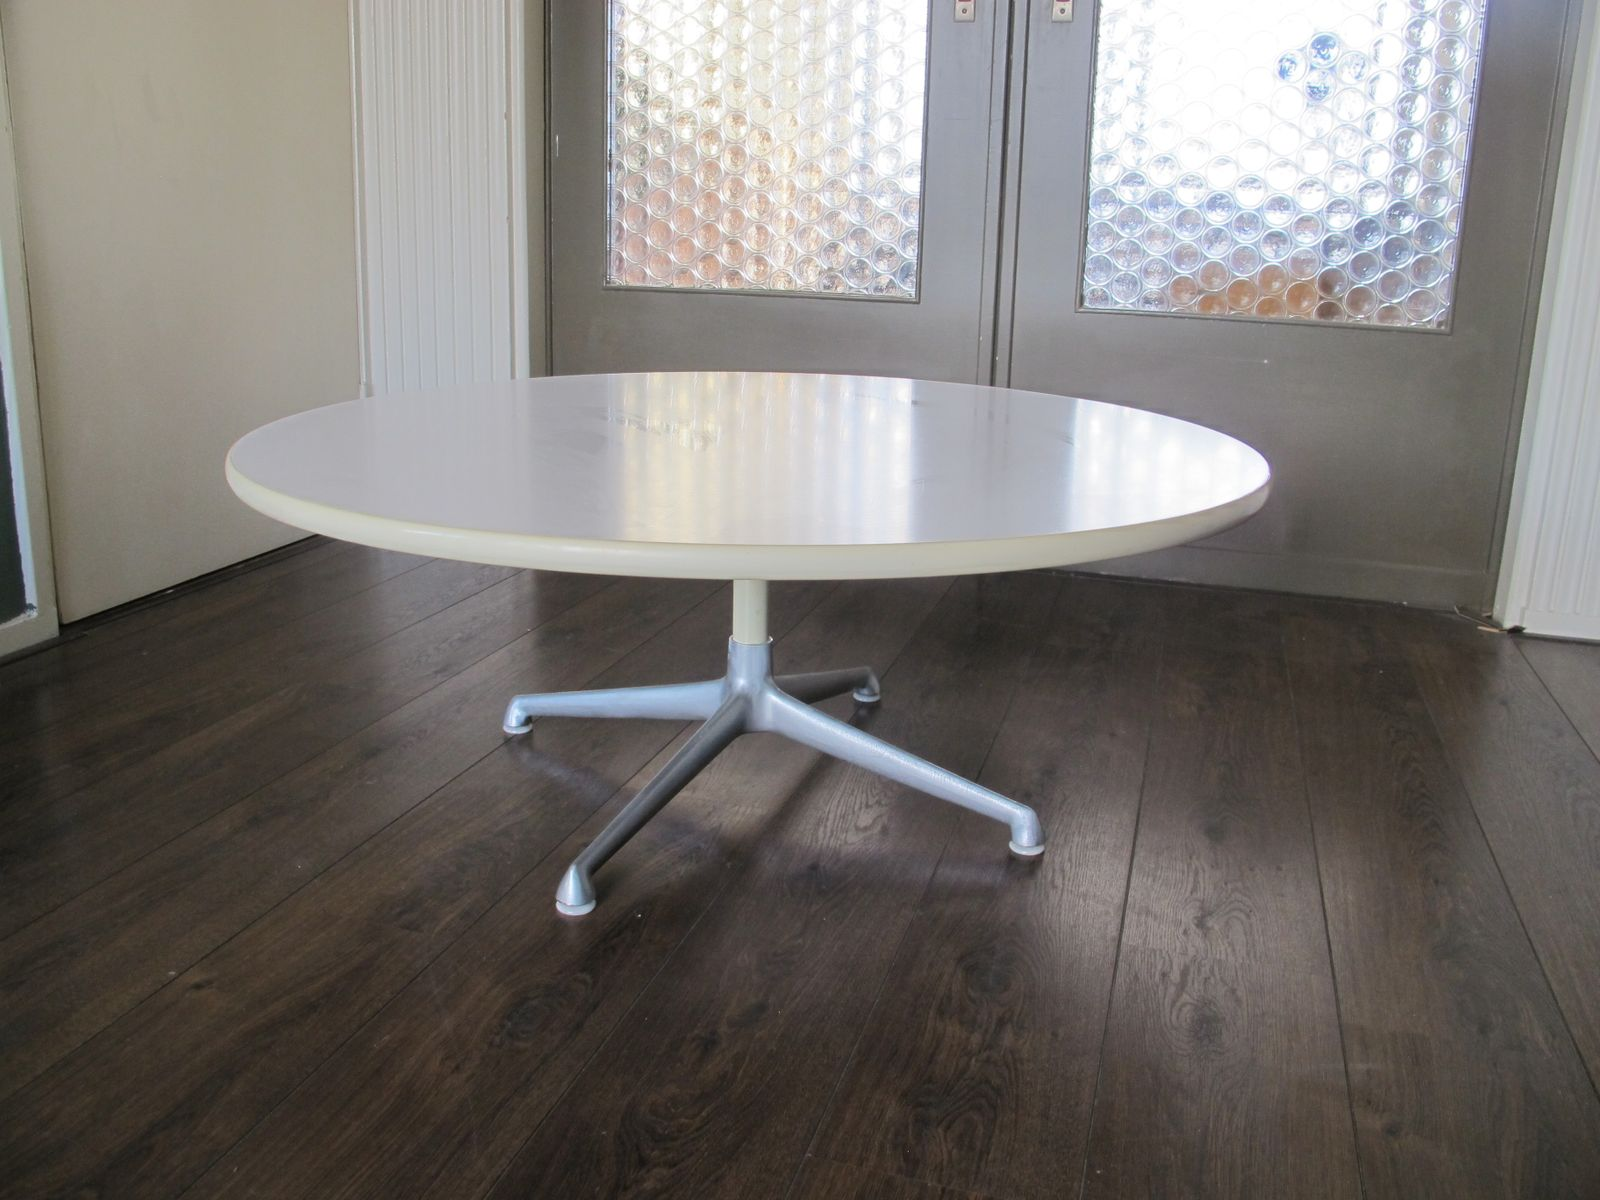 Vintage Circular Coffee Table by Charles & Ray Eames for Herman